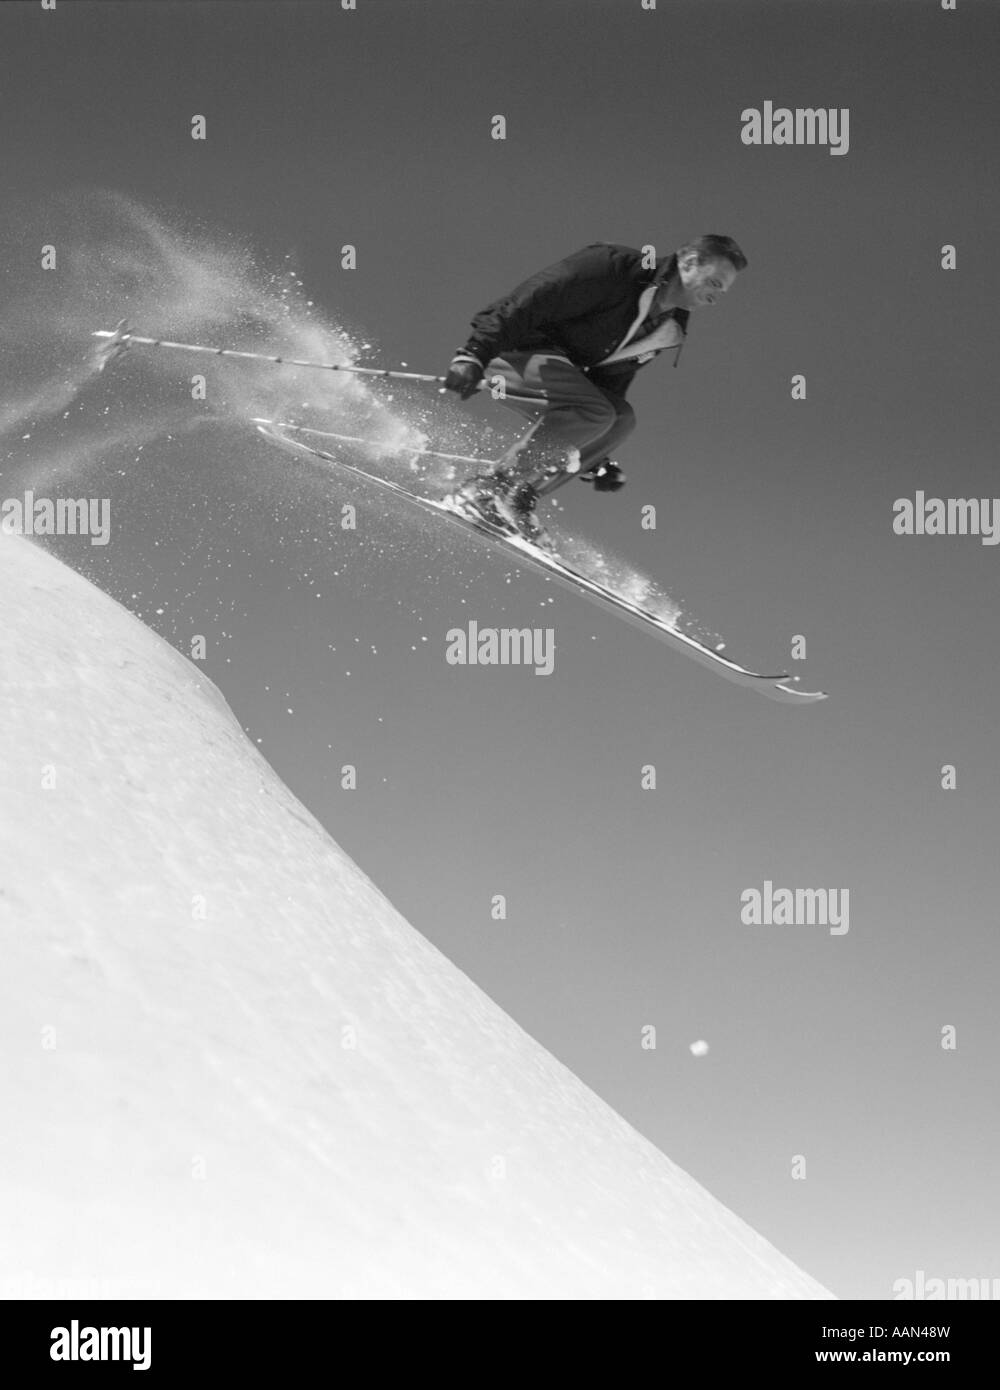 1950s MAN SKIING DOWNHILL OFF SLOPE JUMPING INTO AIR SKI SKIS SPORTS WINTER SNOW - Stock Image